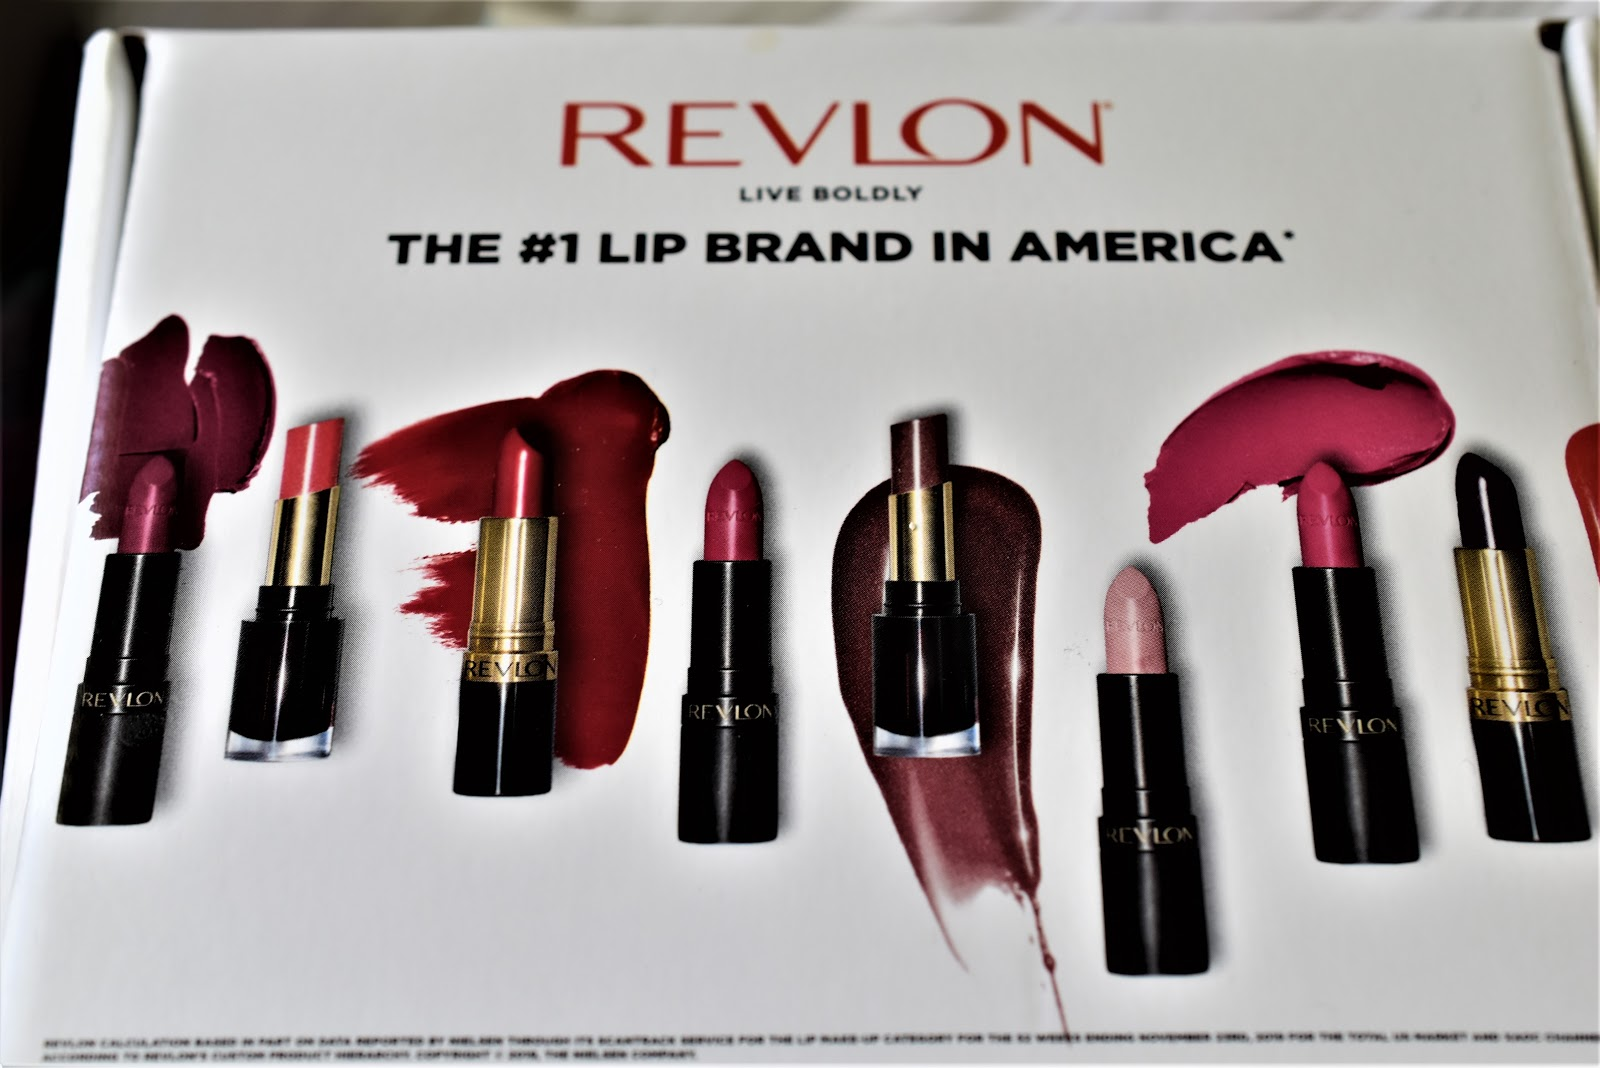 Celebrate National Lipstick Day with The #1 Lip Brand in America: REVLON